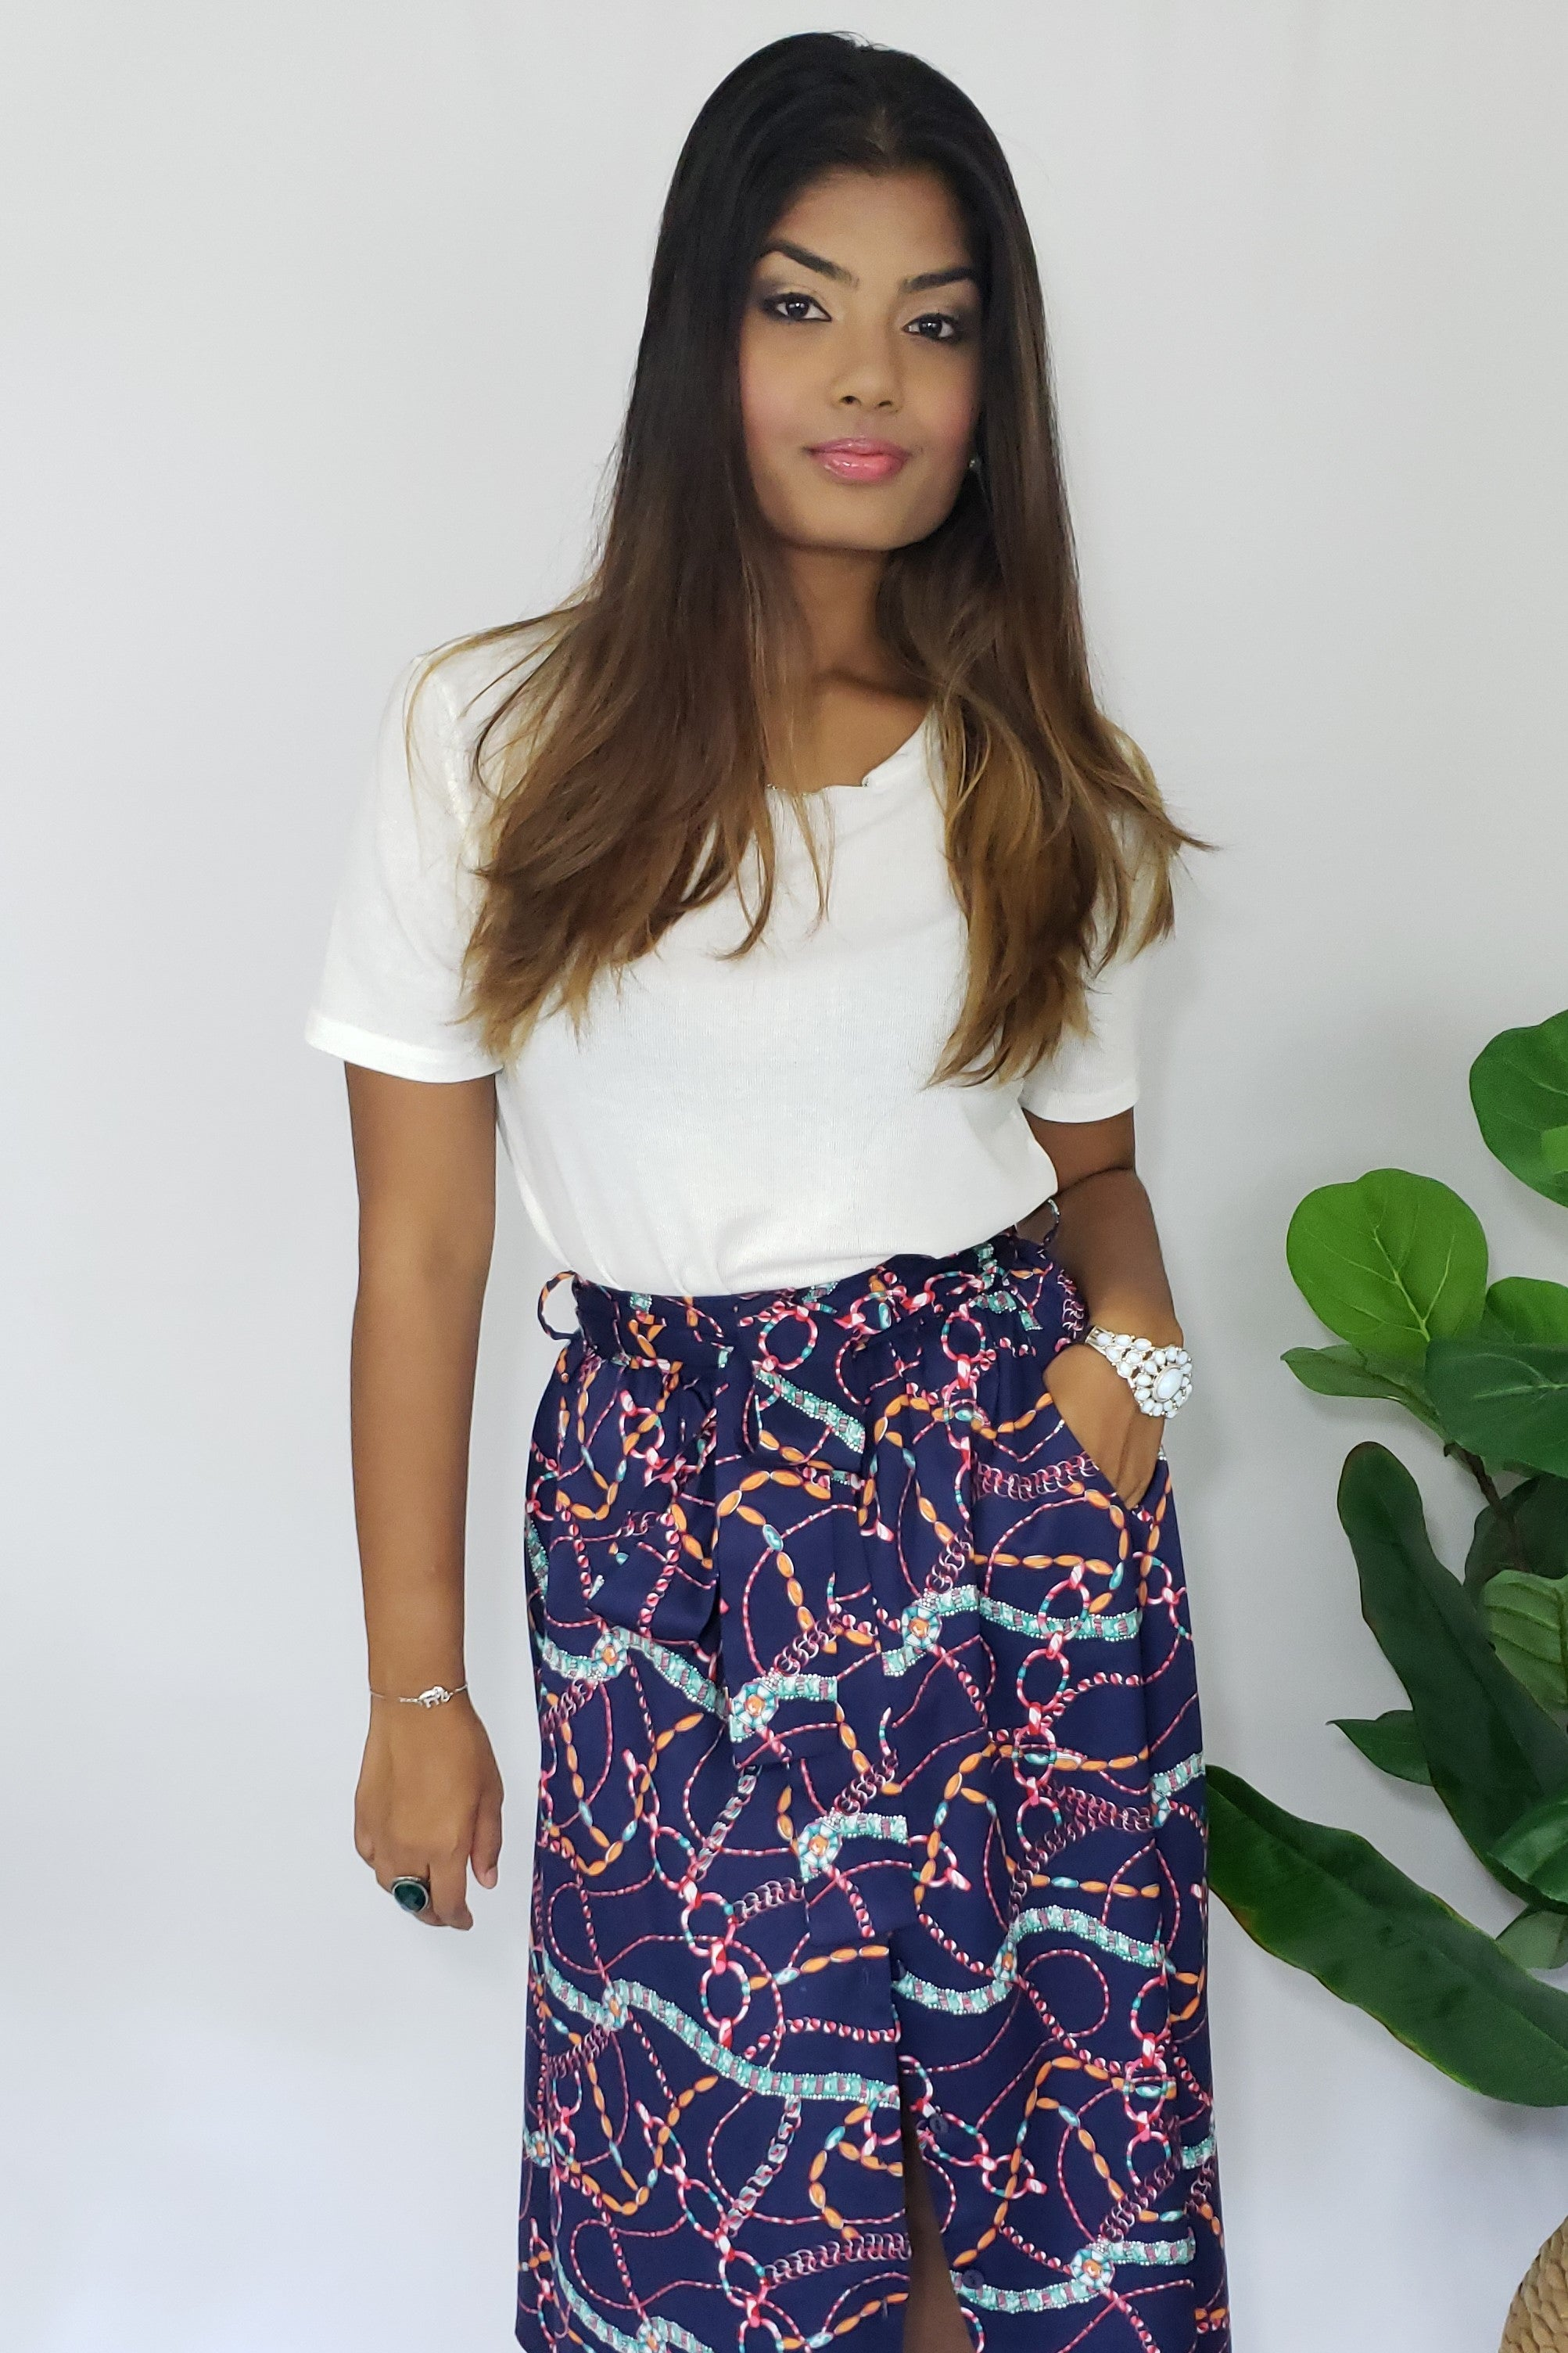 C-Robinson Ribbons in D-Ski Belted Midi Skirt in Navy Multi - Houzz of DVA Boutique